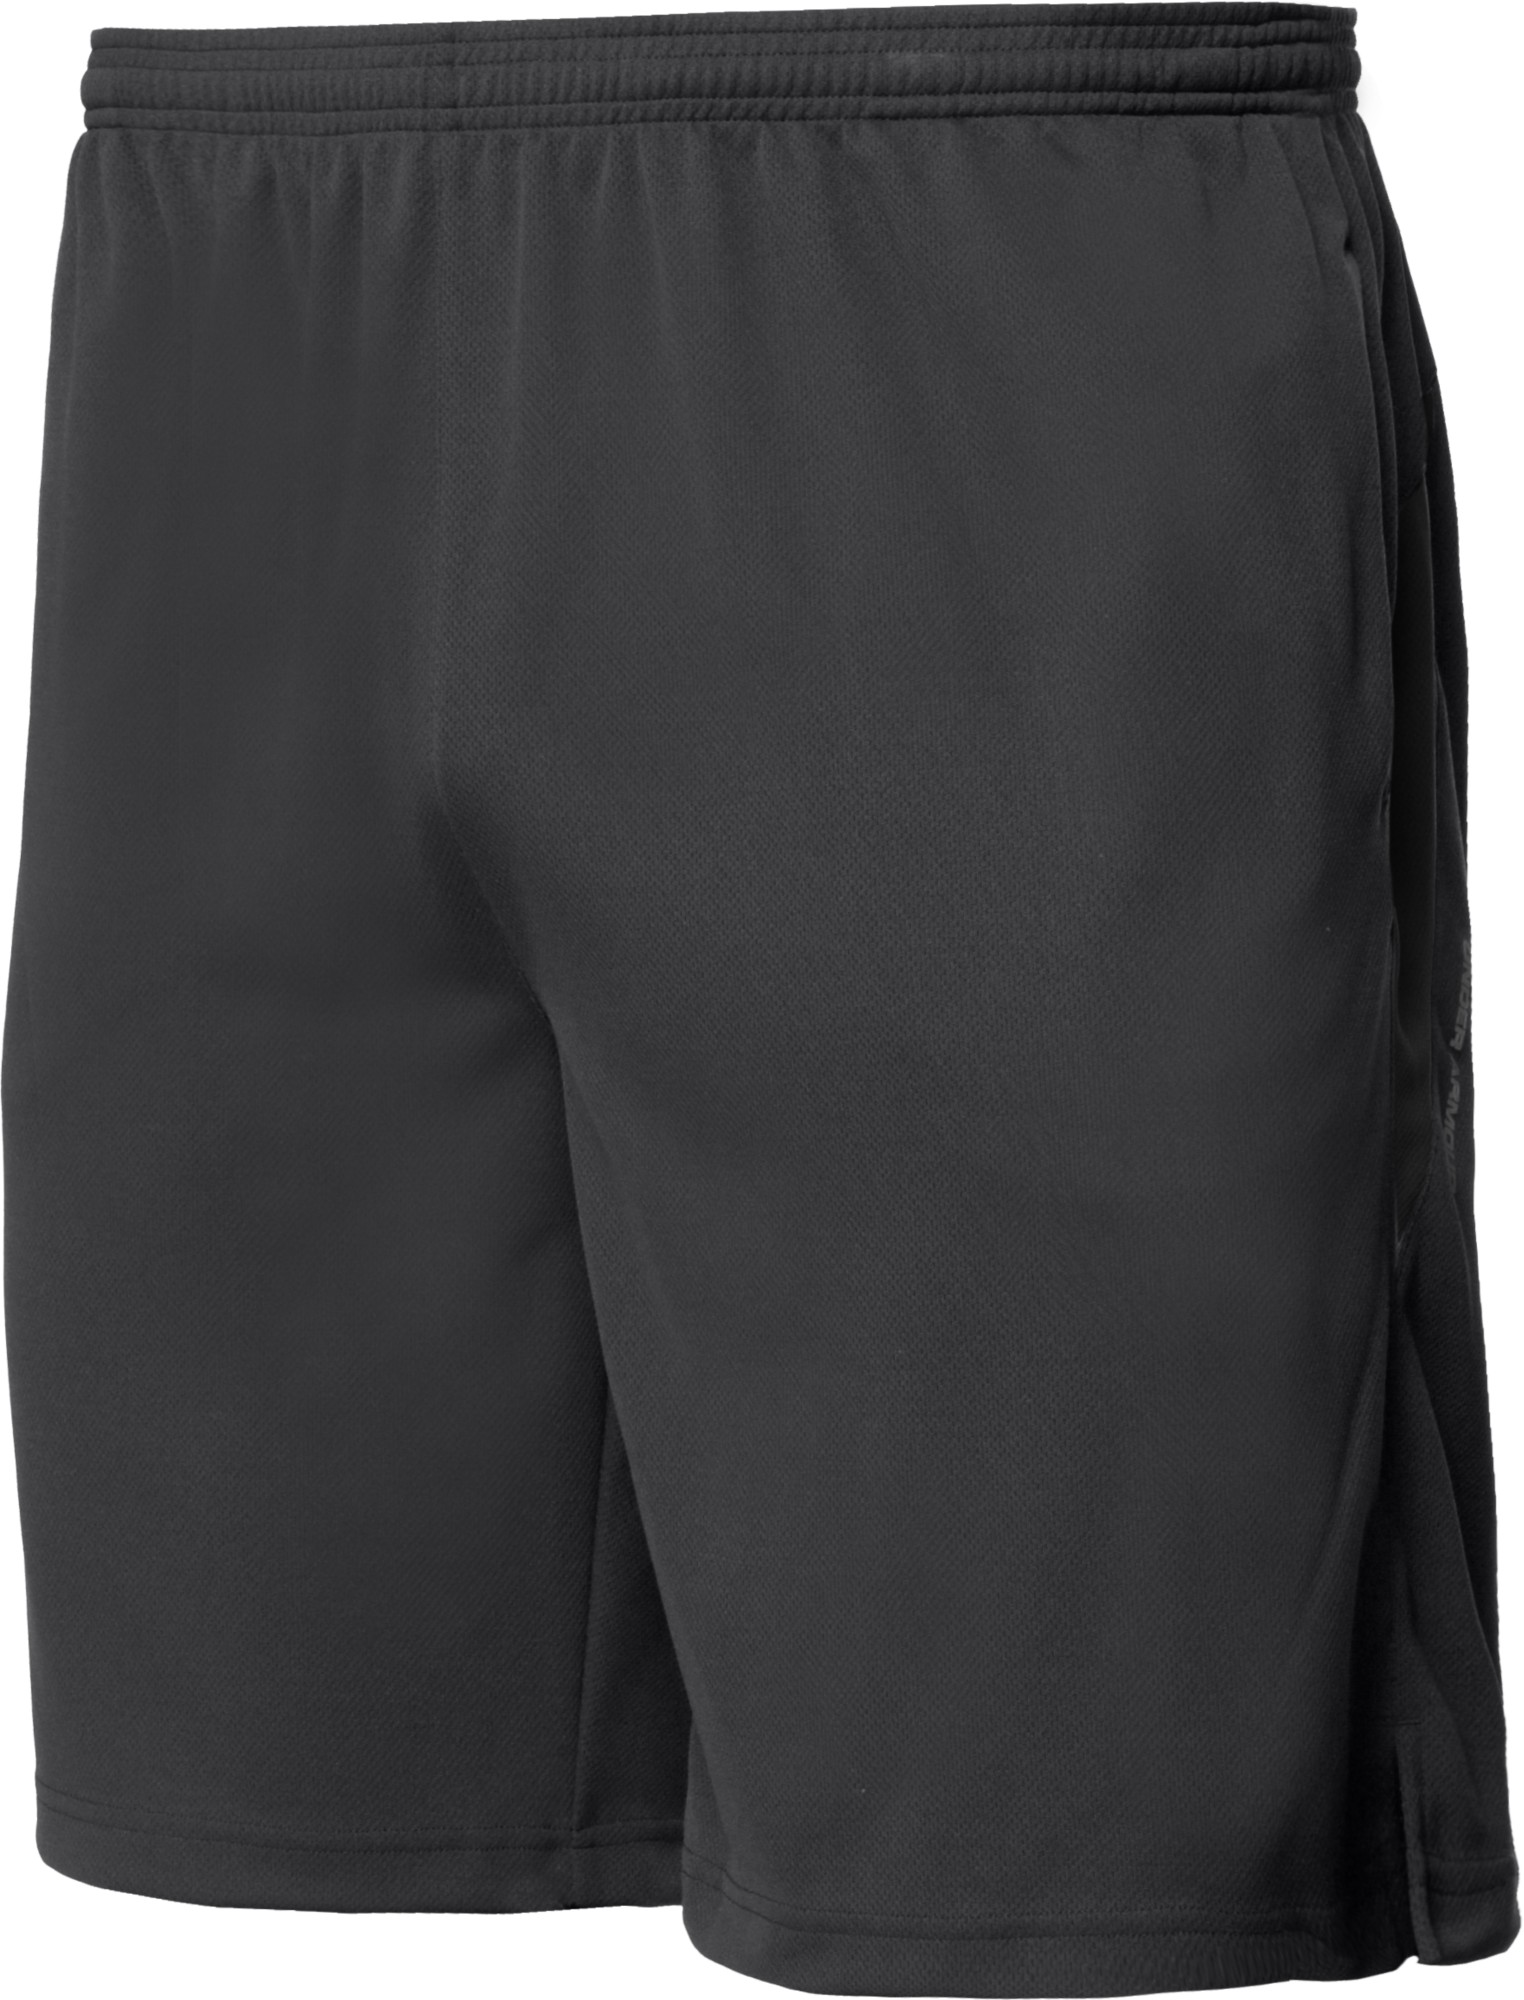 "Under Armour Endurance Knit 9"" Shorts"